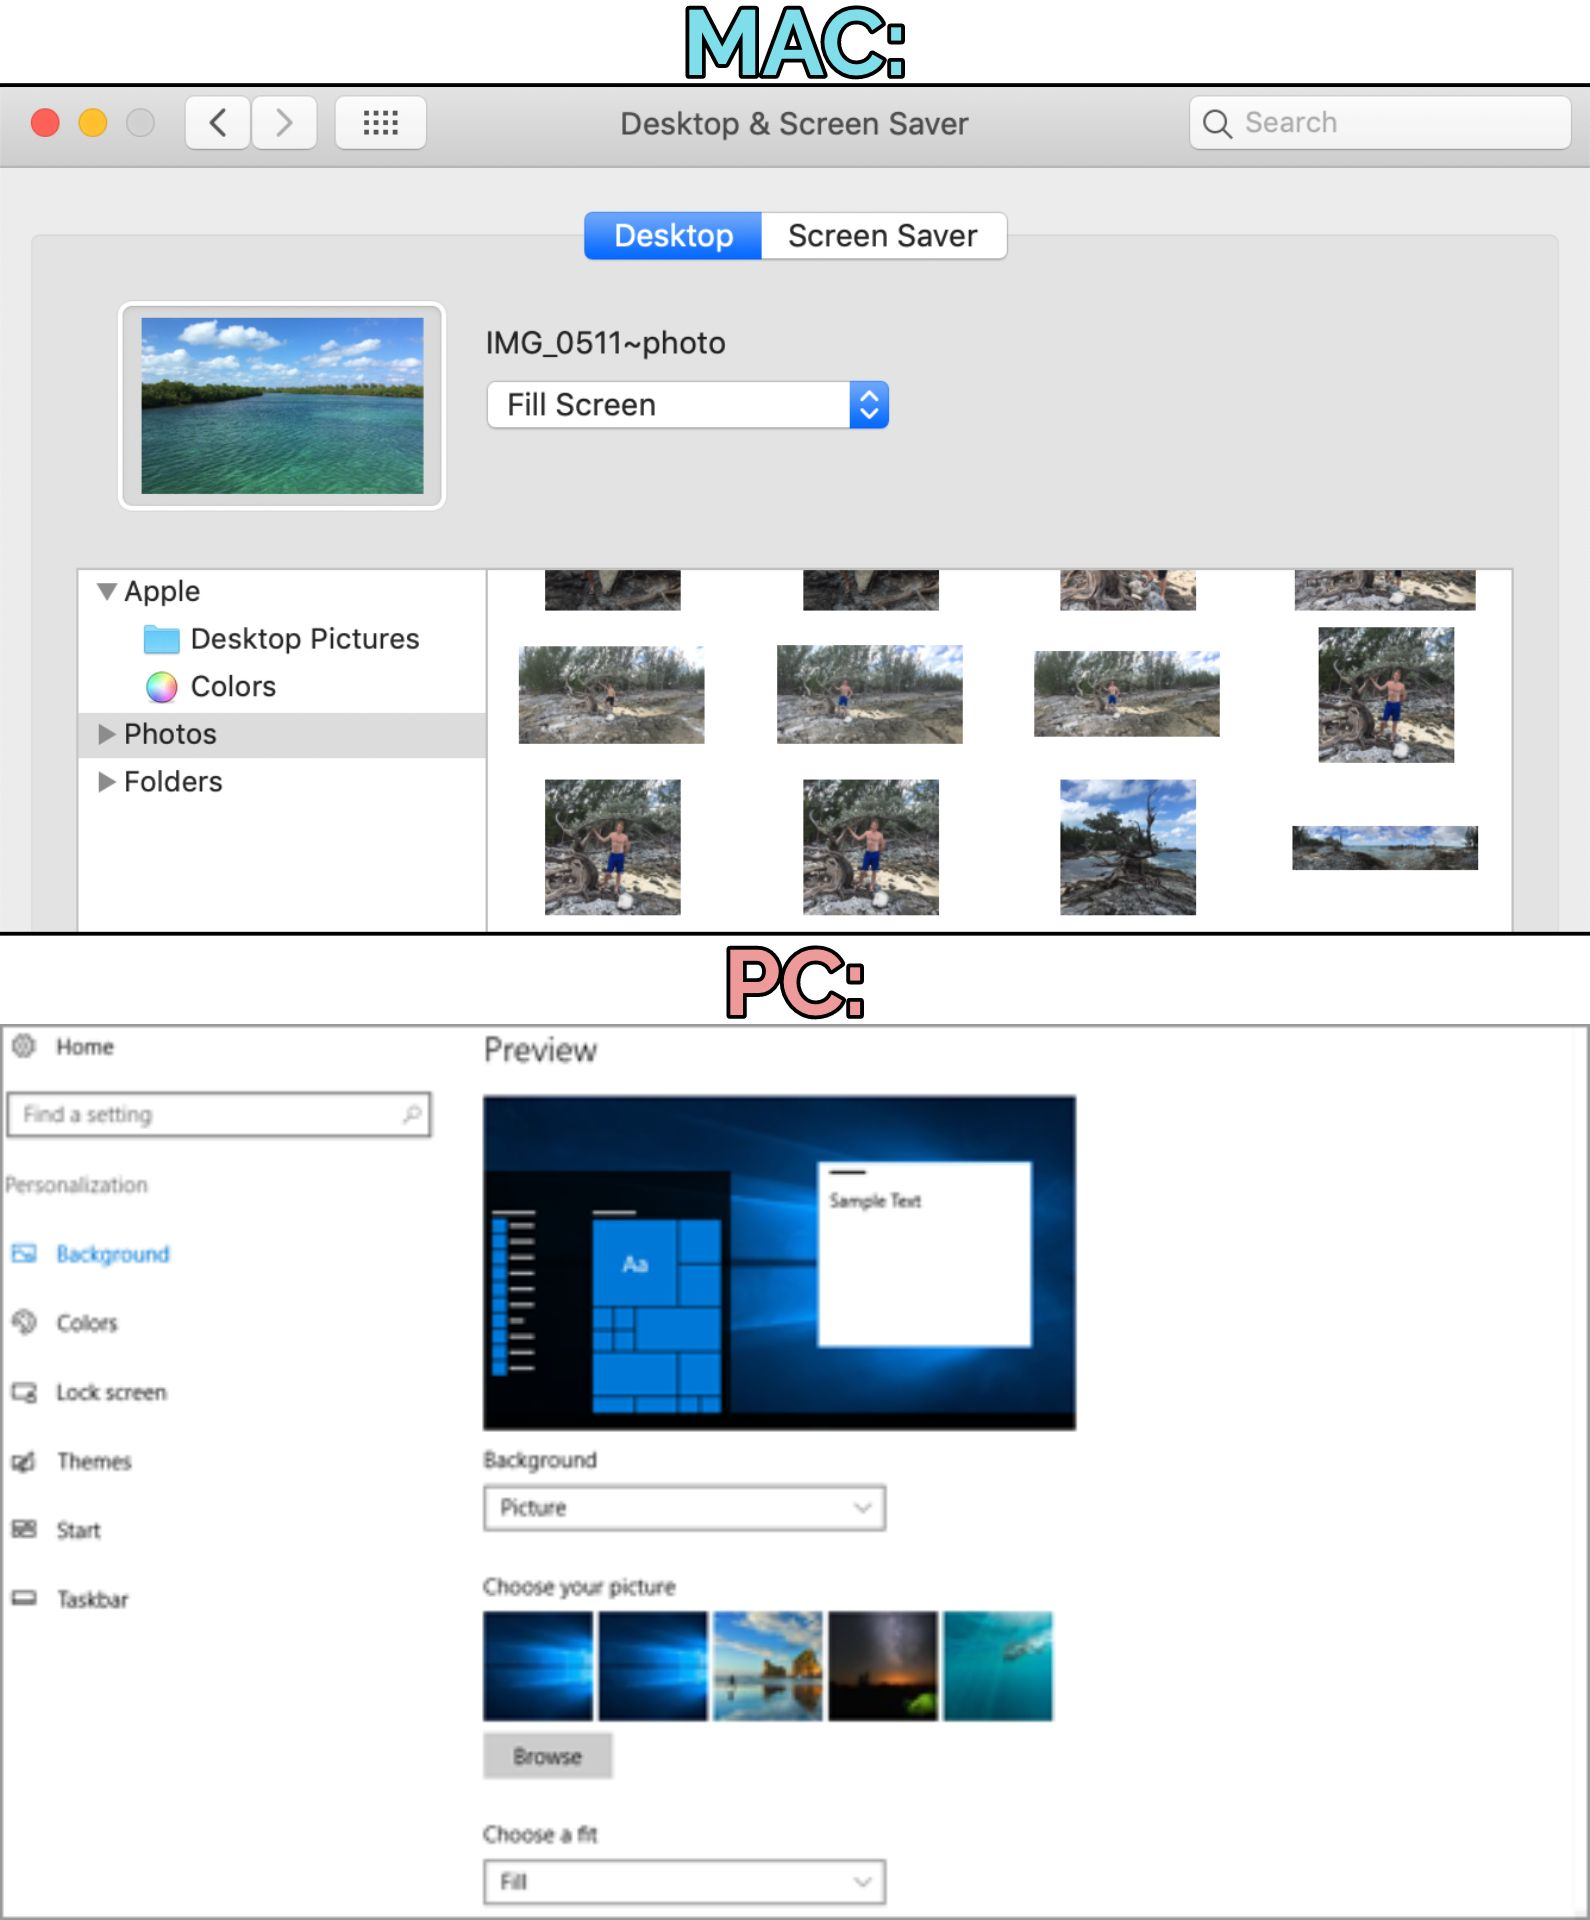 Screenshots demonstrating how to update desktop wallpaper images on Mac and PC computers.